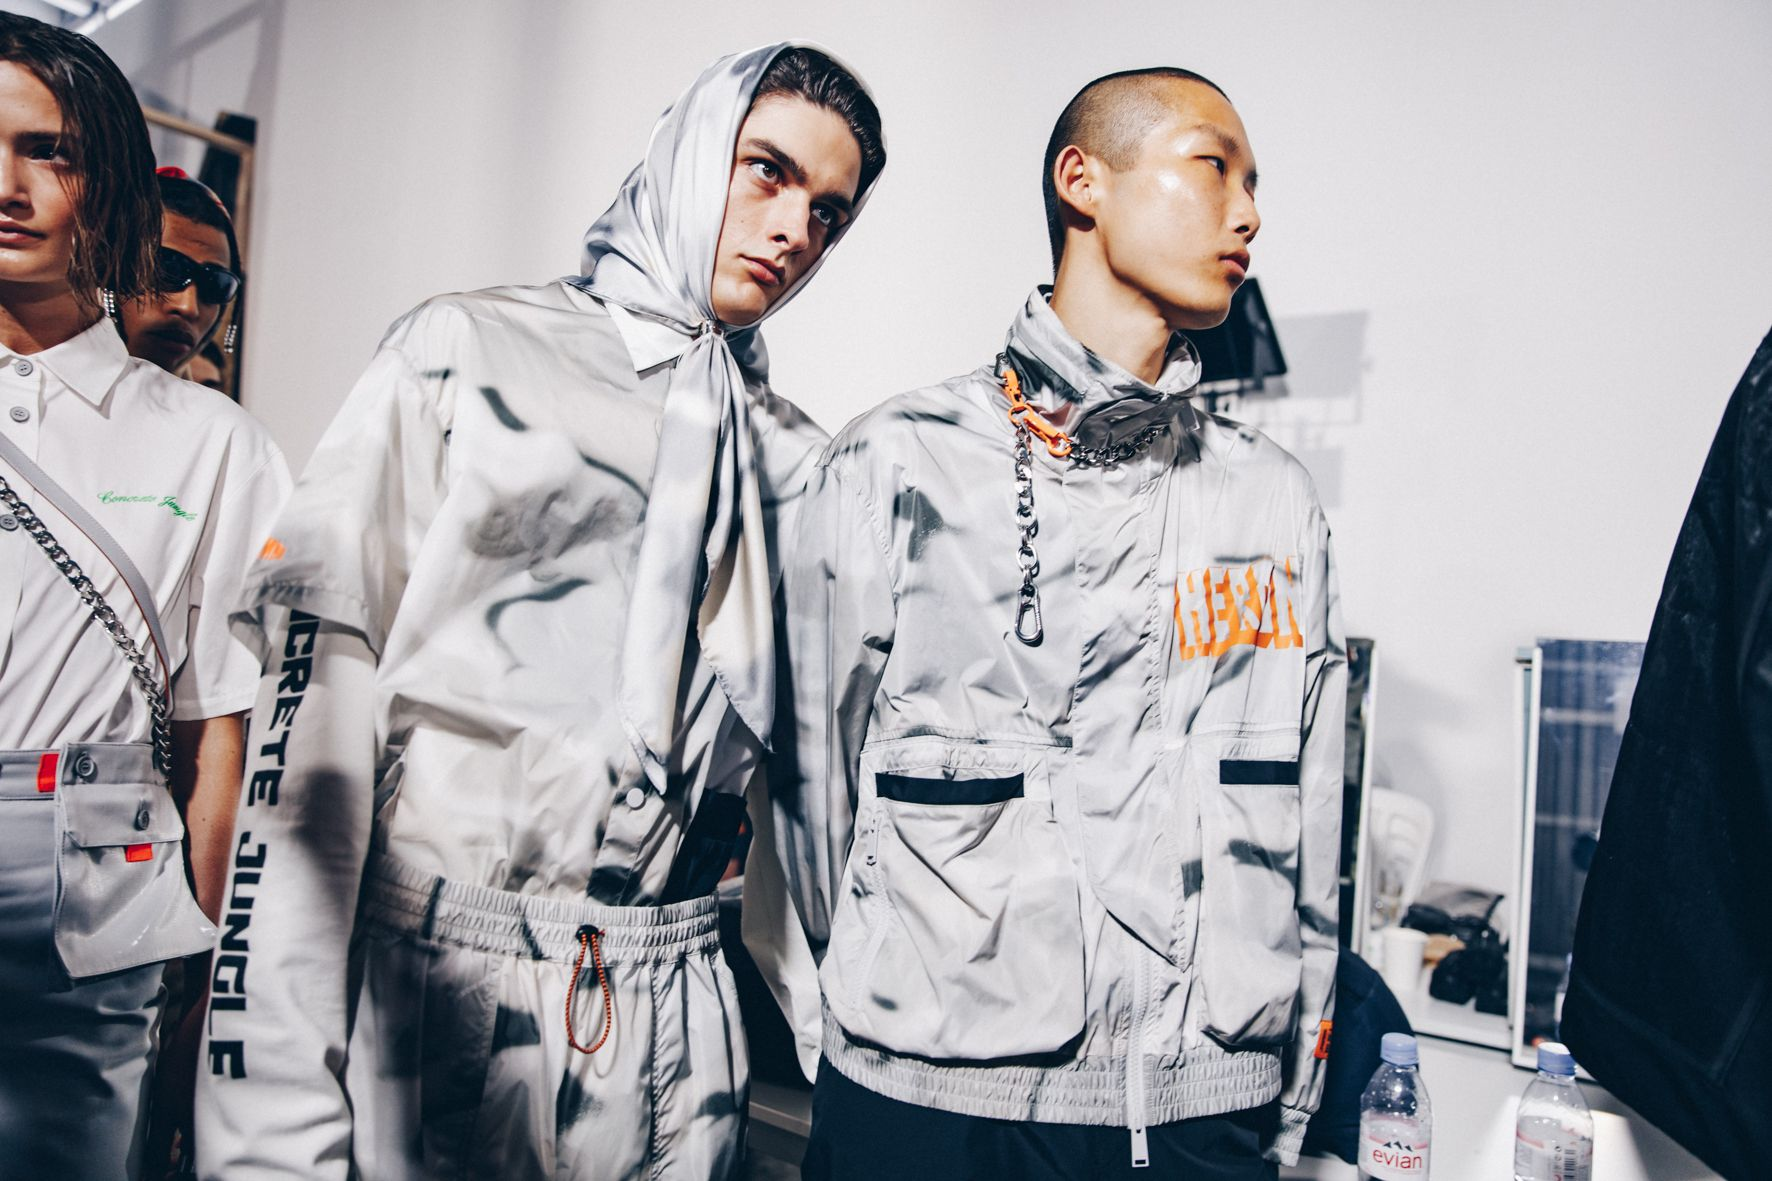 heron preston TTT Magazine 5